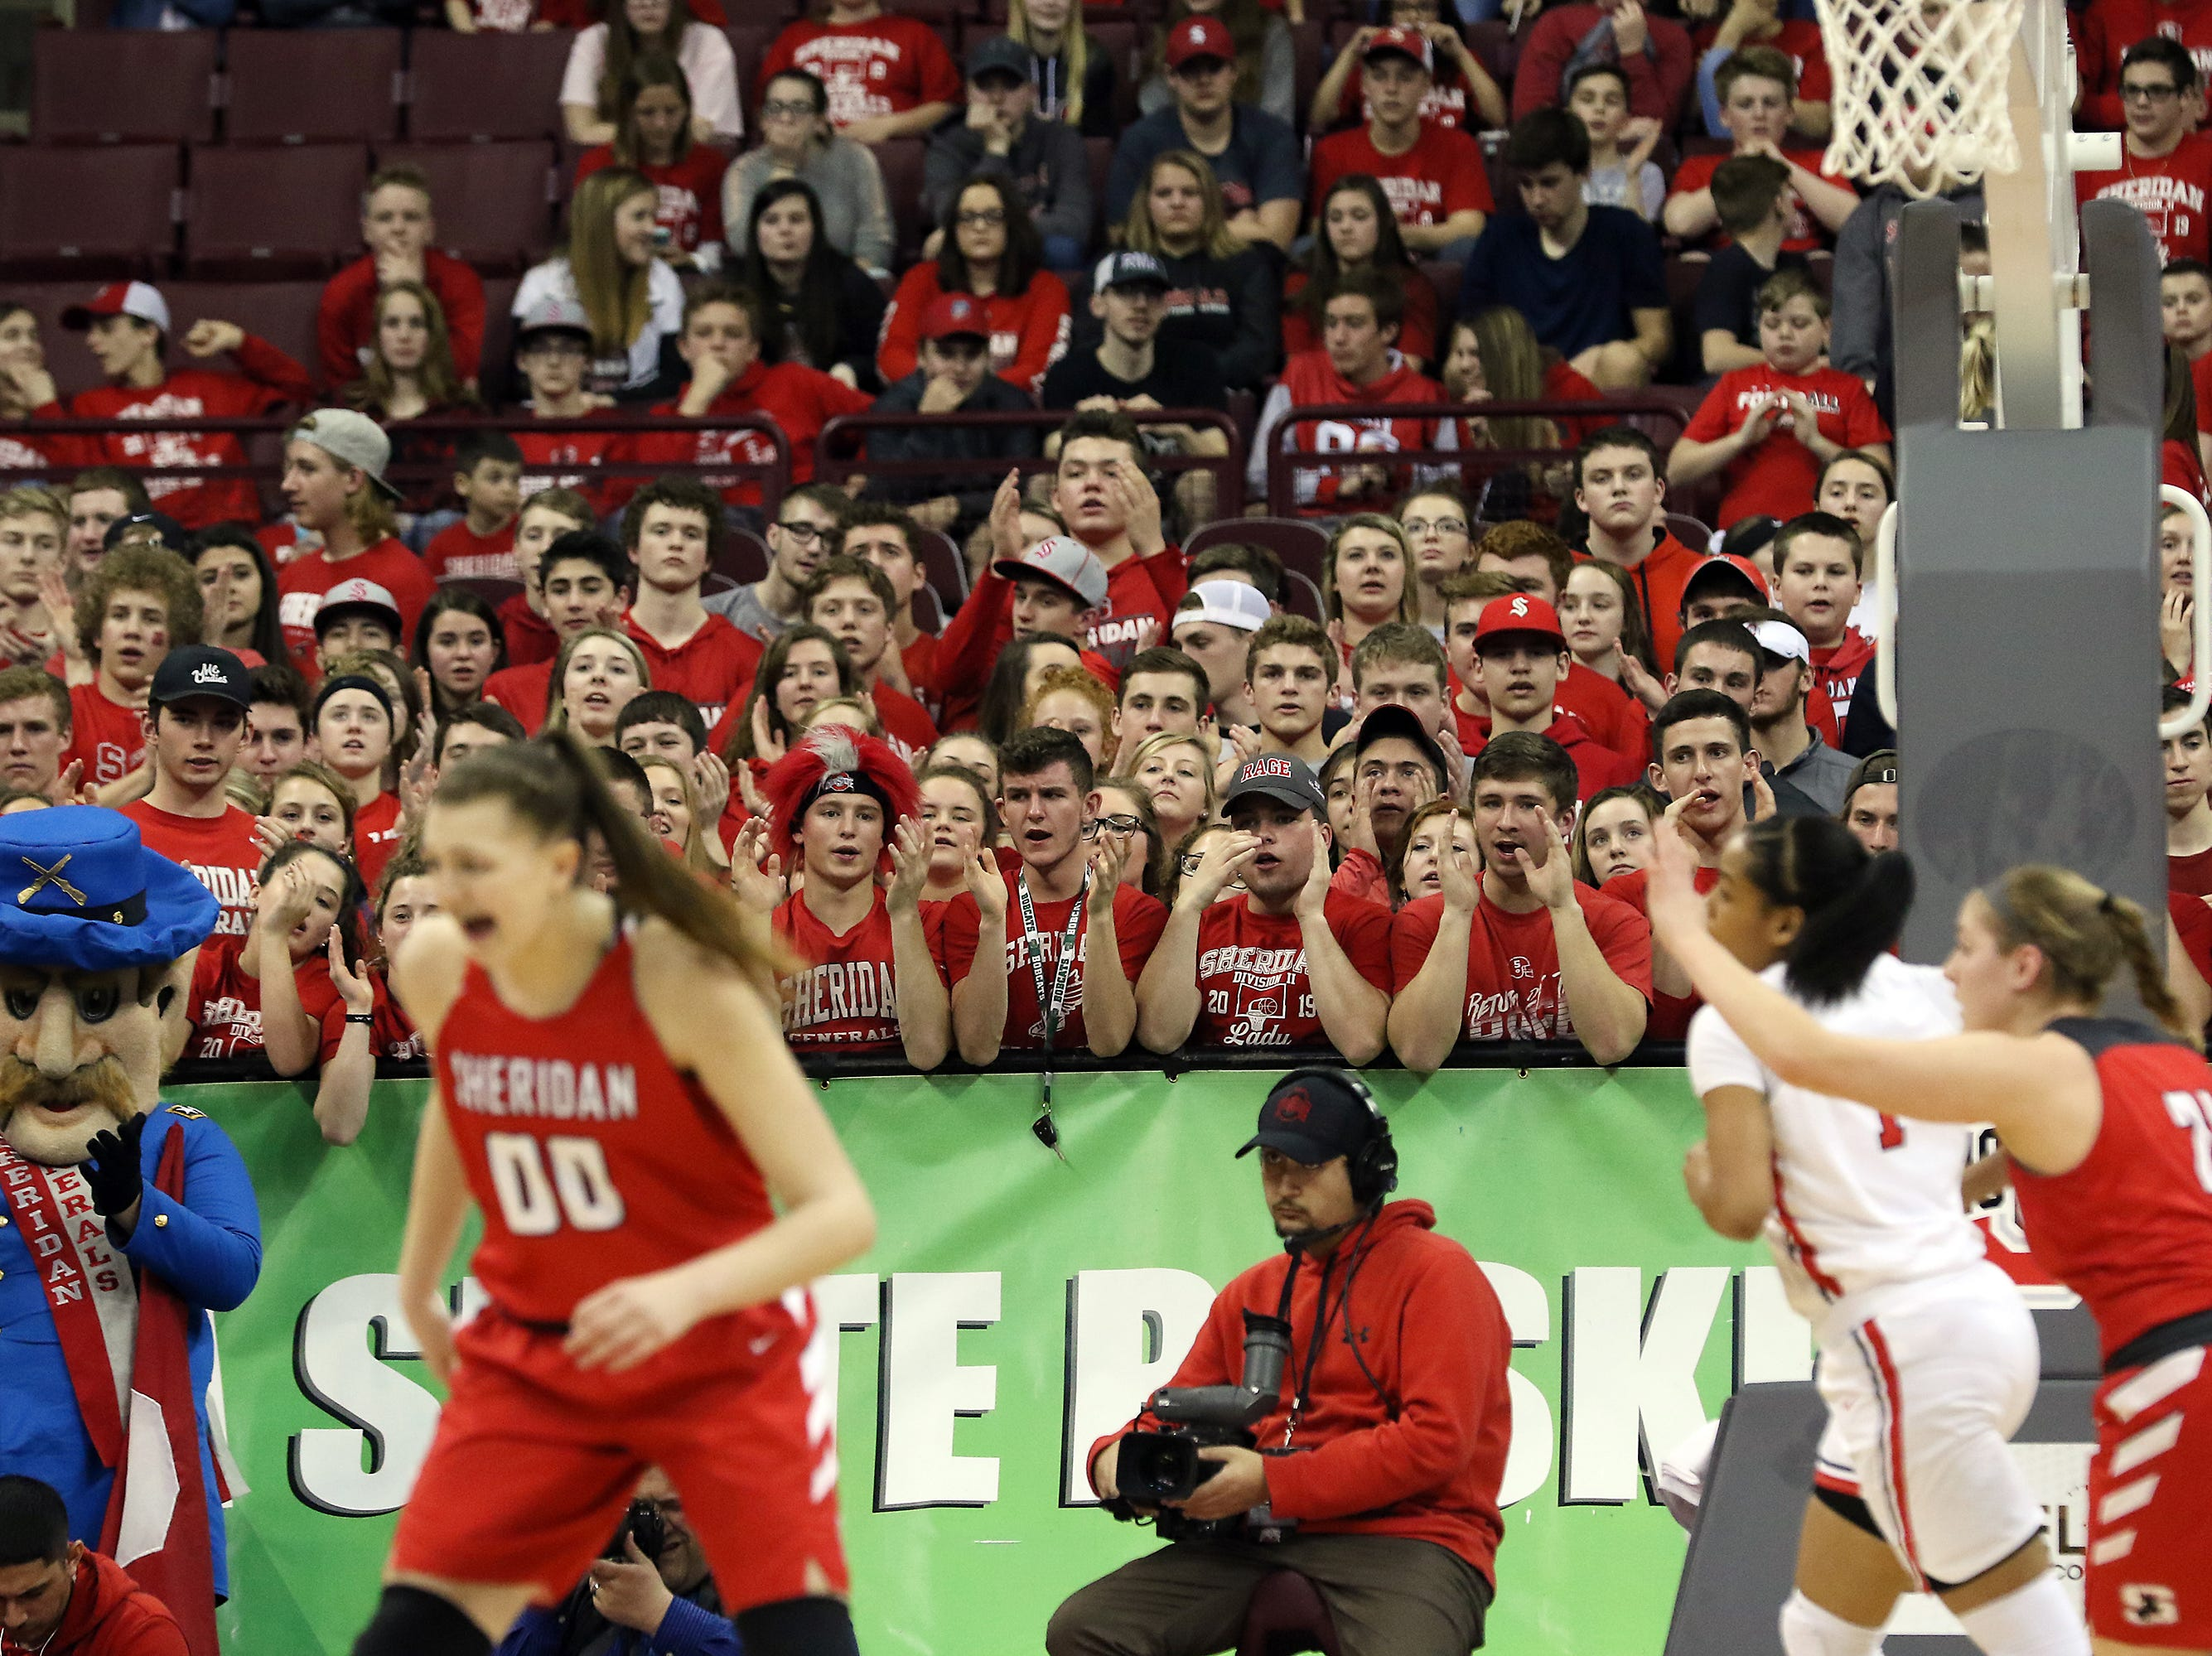 Sheridna fans cheer during the DII state semis in Columbus on Thursday.